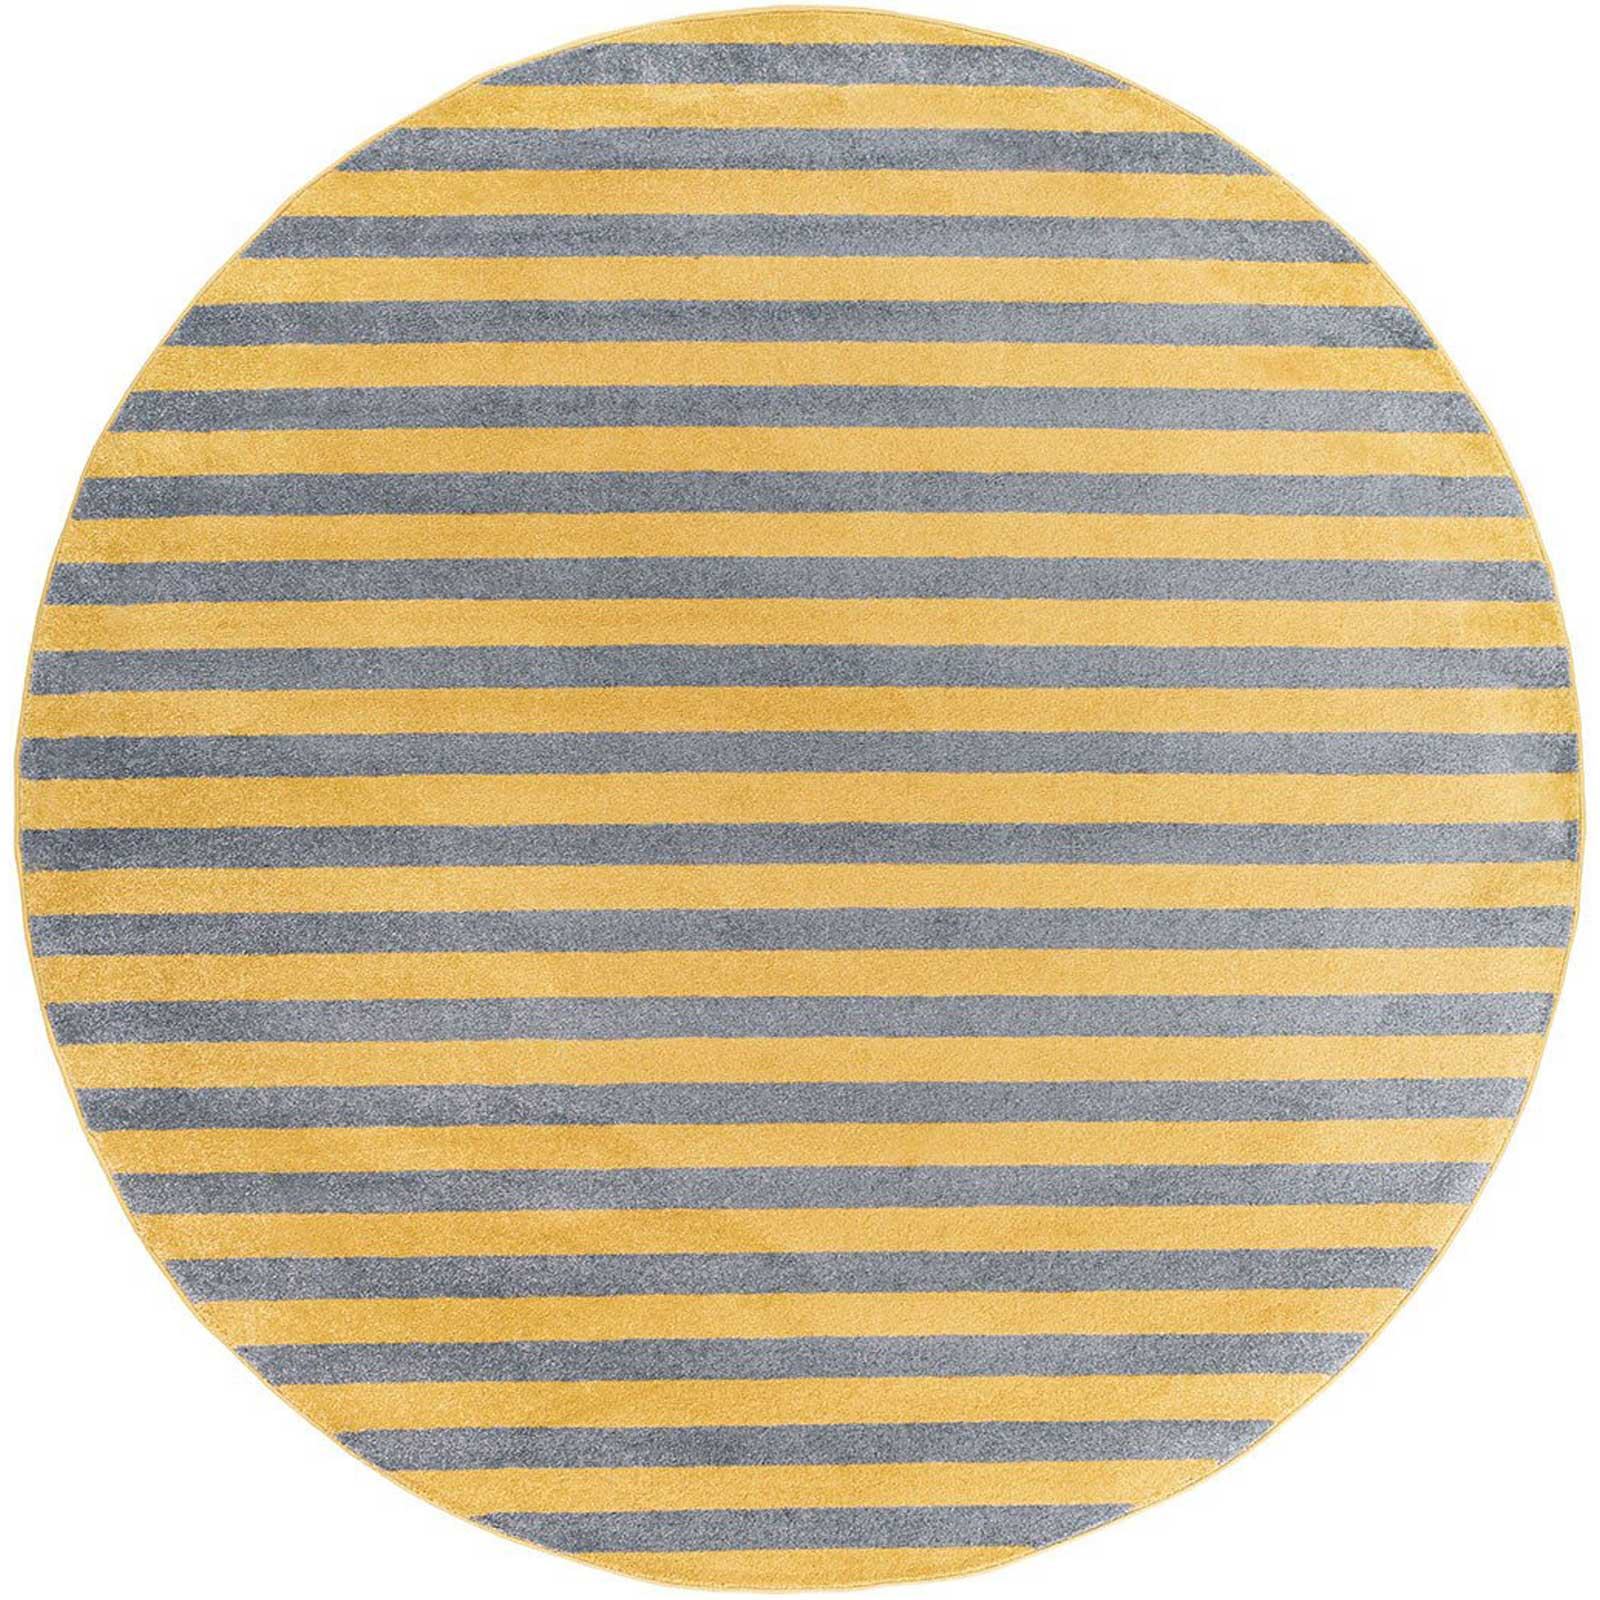 Horizon Lines Gold/Gray Round Rug